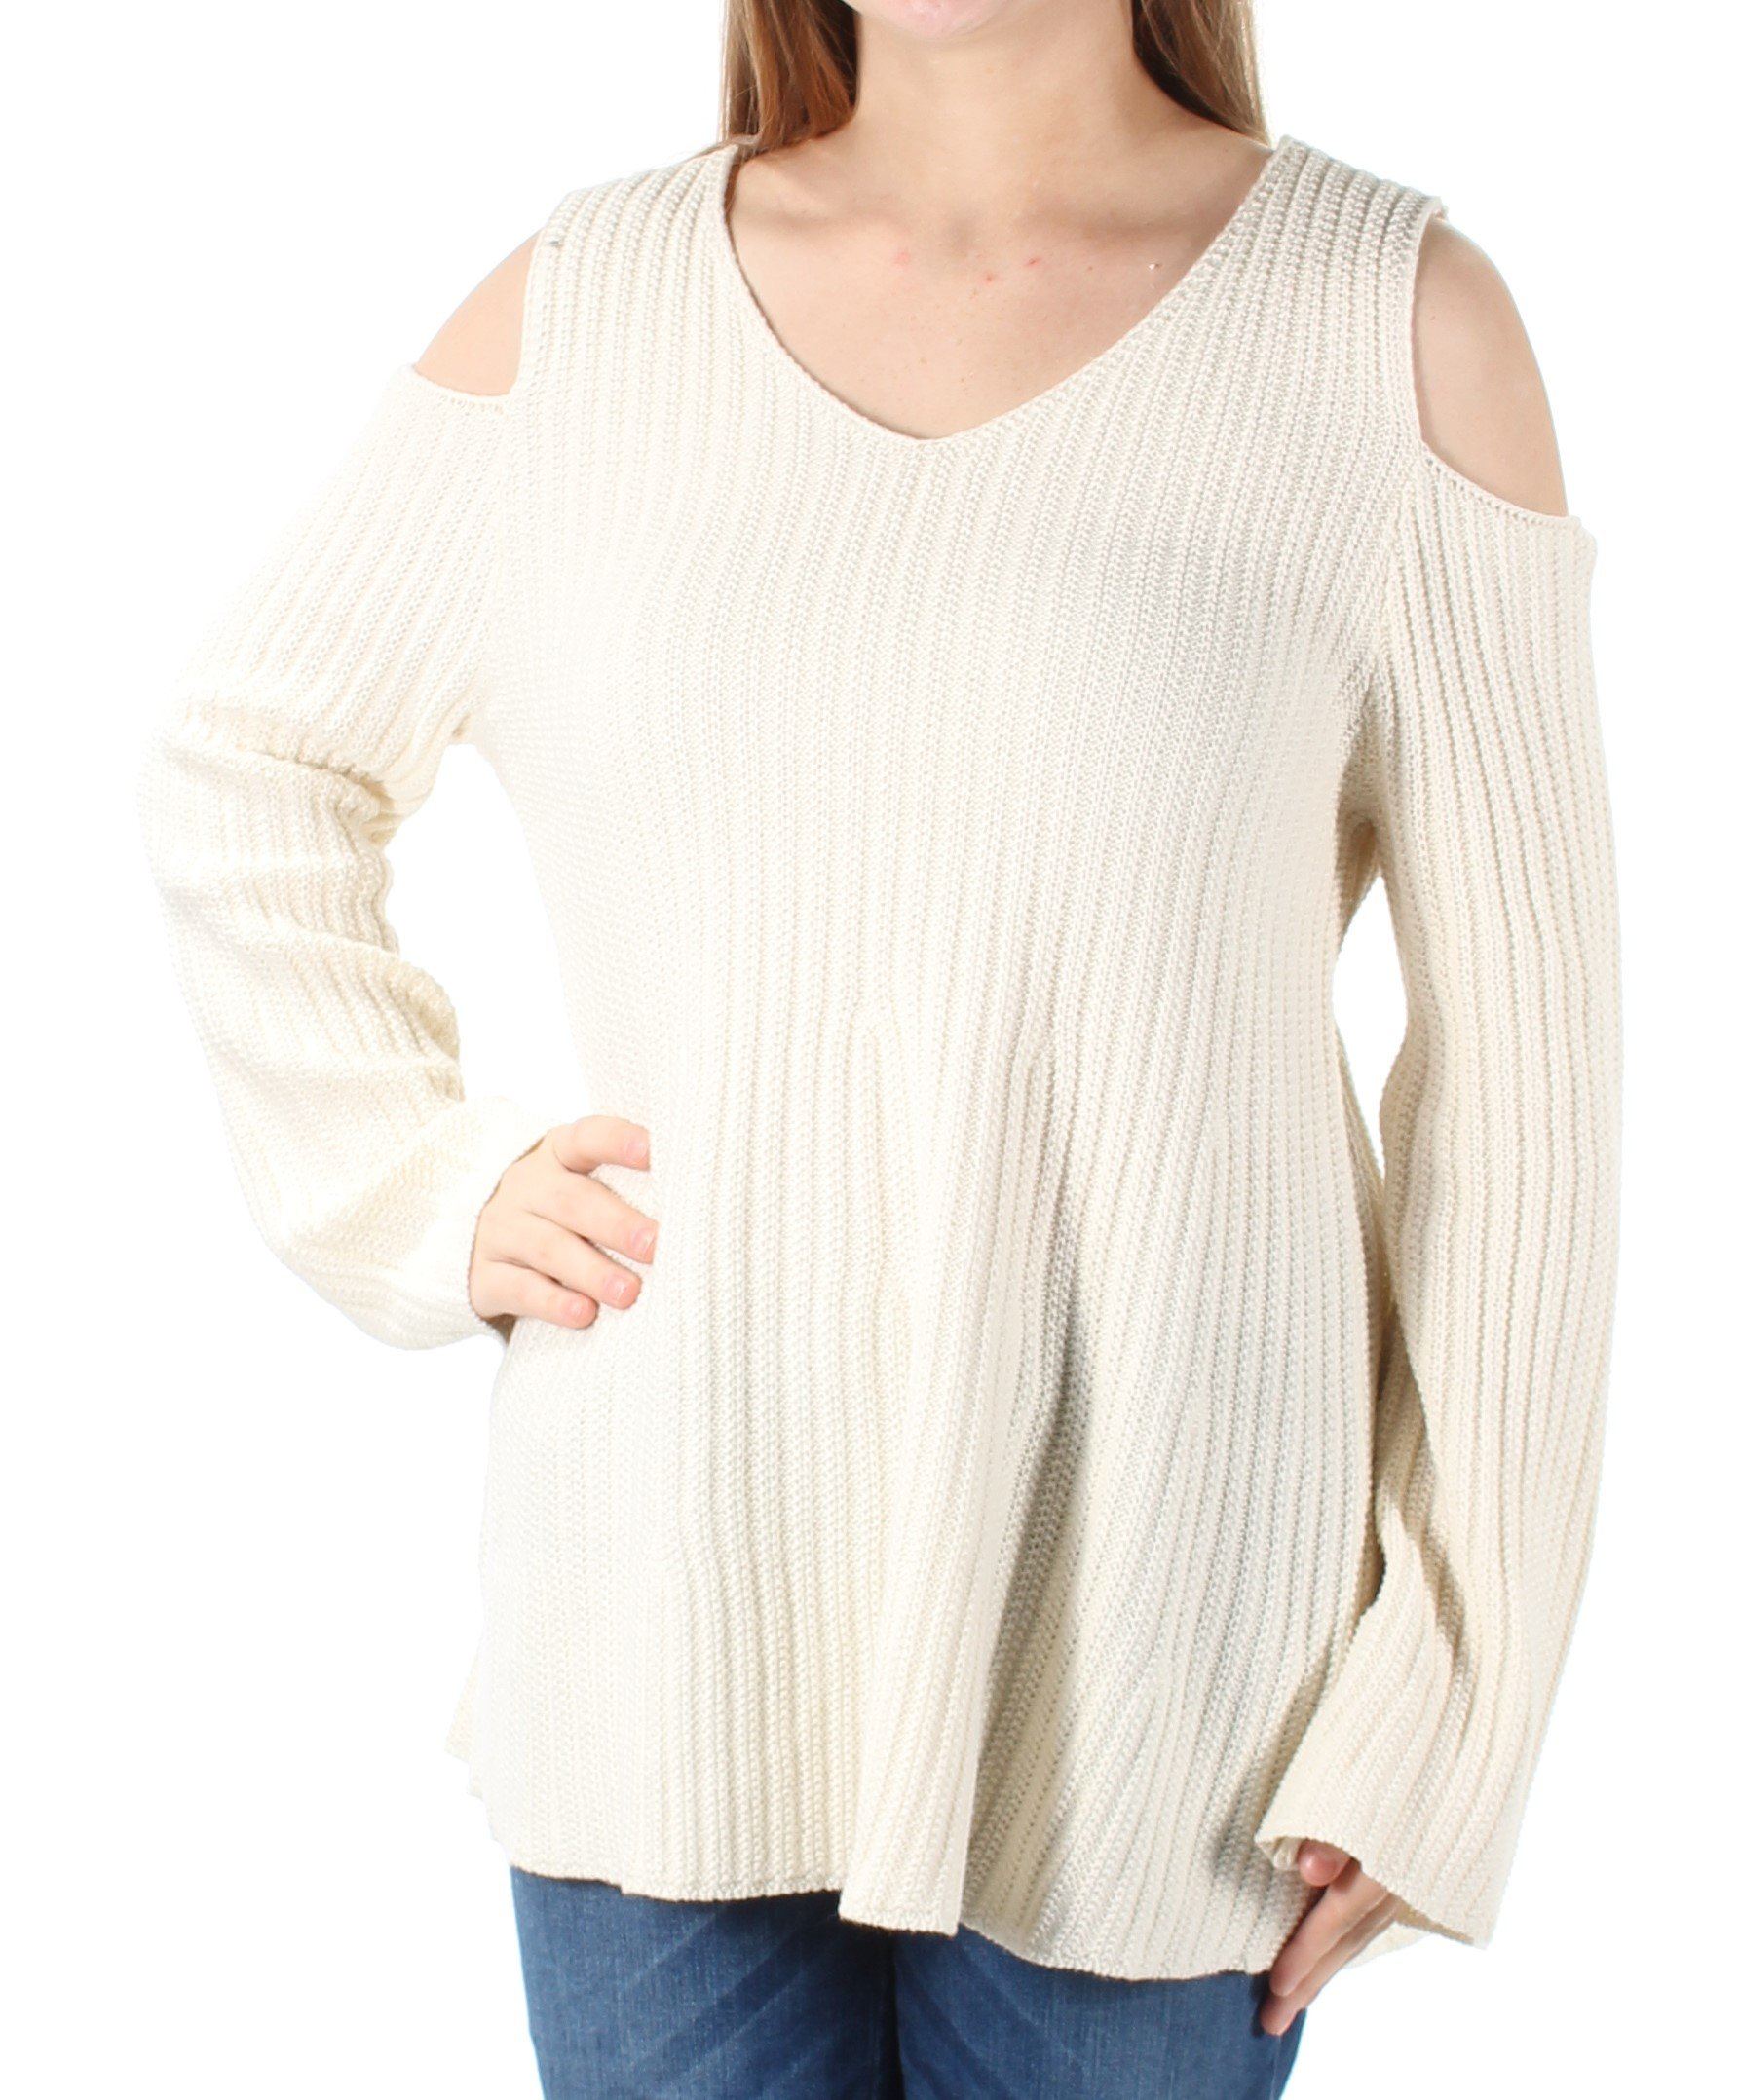 Style & Co. Womens Cold-Shoulder Bell Sleeves Sweater Ivory M